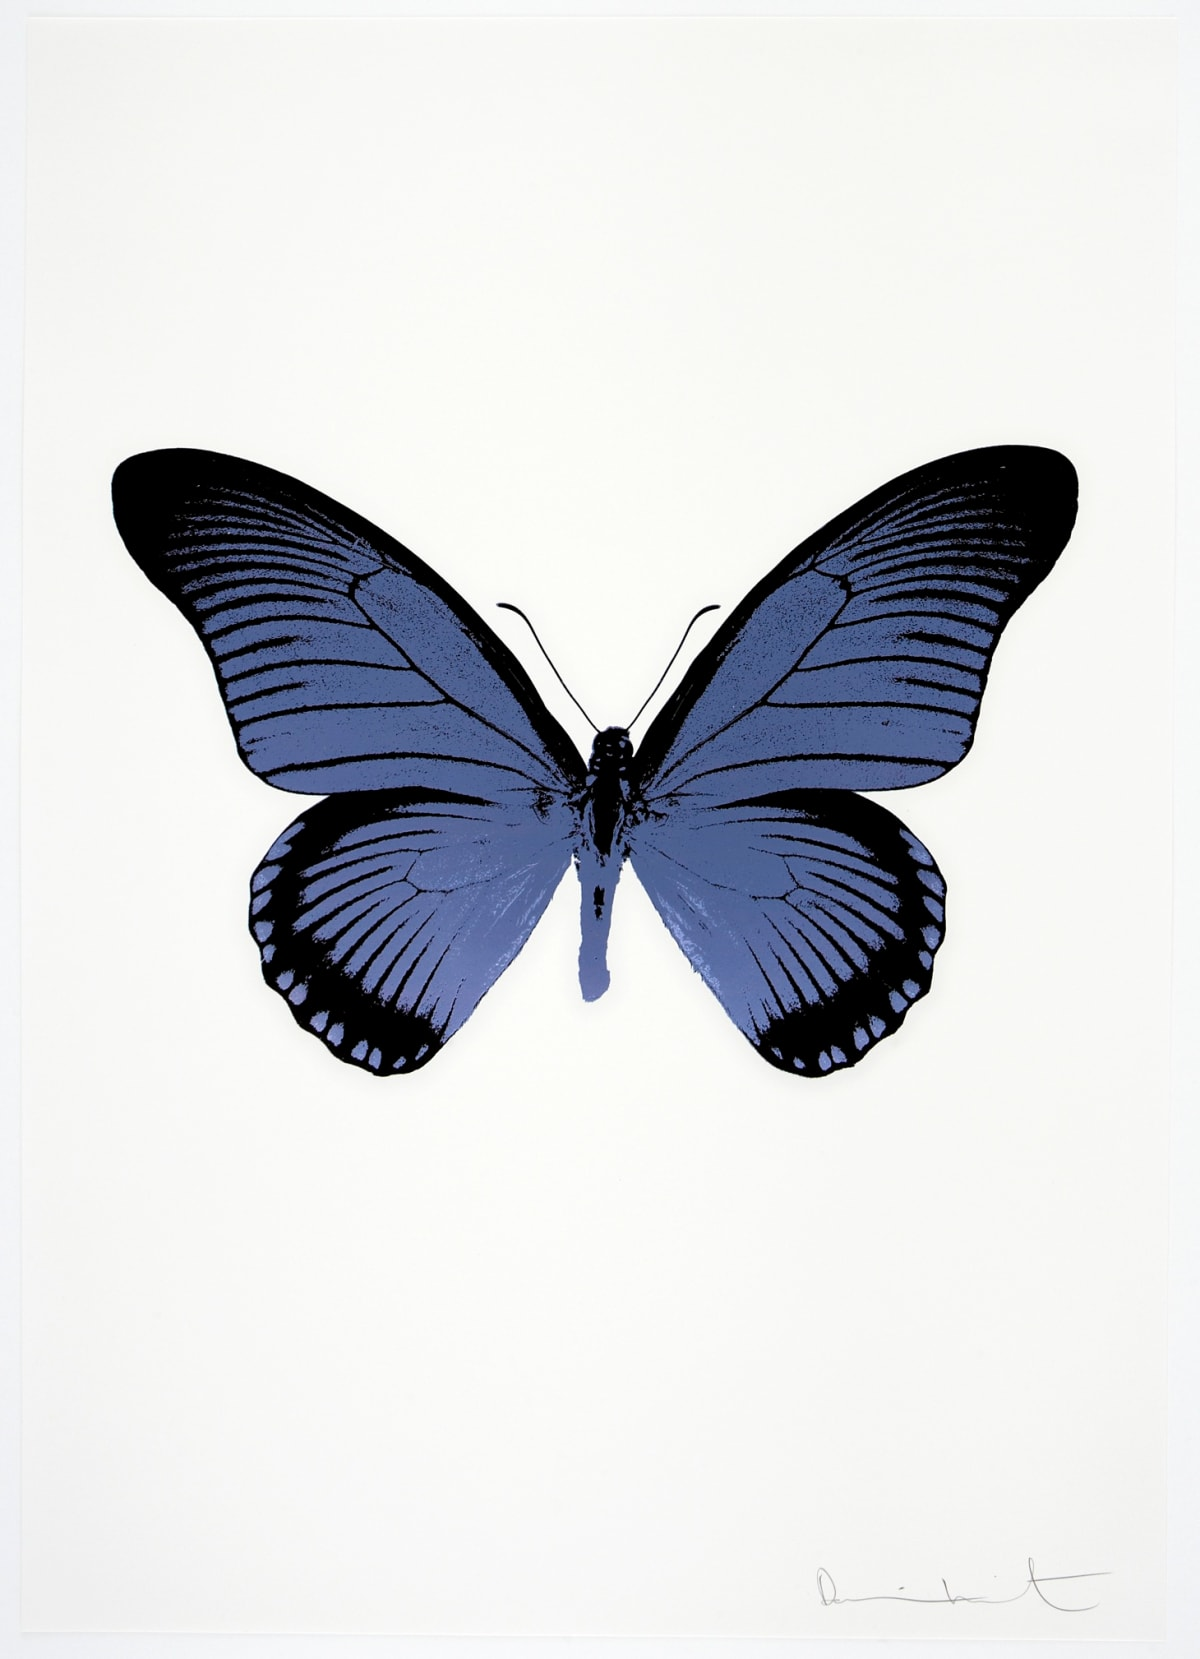 Damien Hirst The Souls IV - Cornflower Blue/Raven Black, 2010 2 colour foil block on 300gsm Arches 88 archival paper. Signed and numbered. Published by Paul Stolper and Other Criteria 72 x 51cm OC8016 / 1418-39 Edition of 15